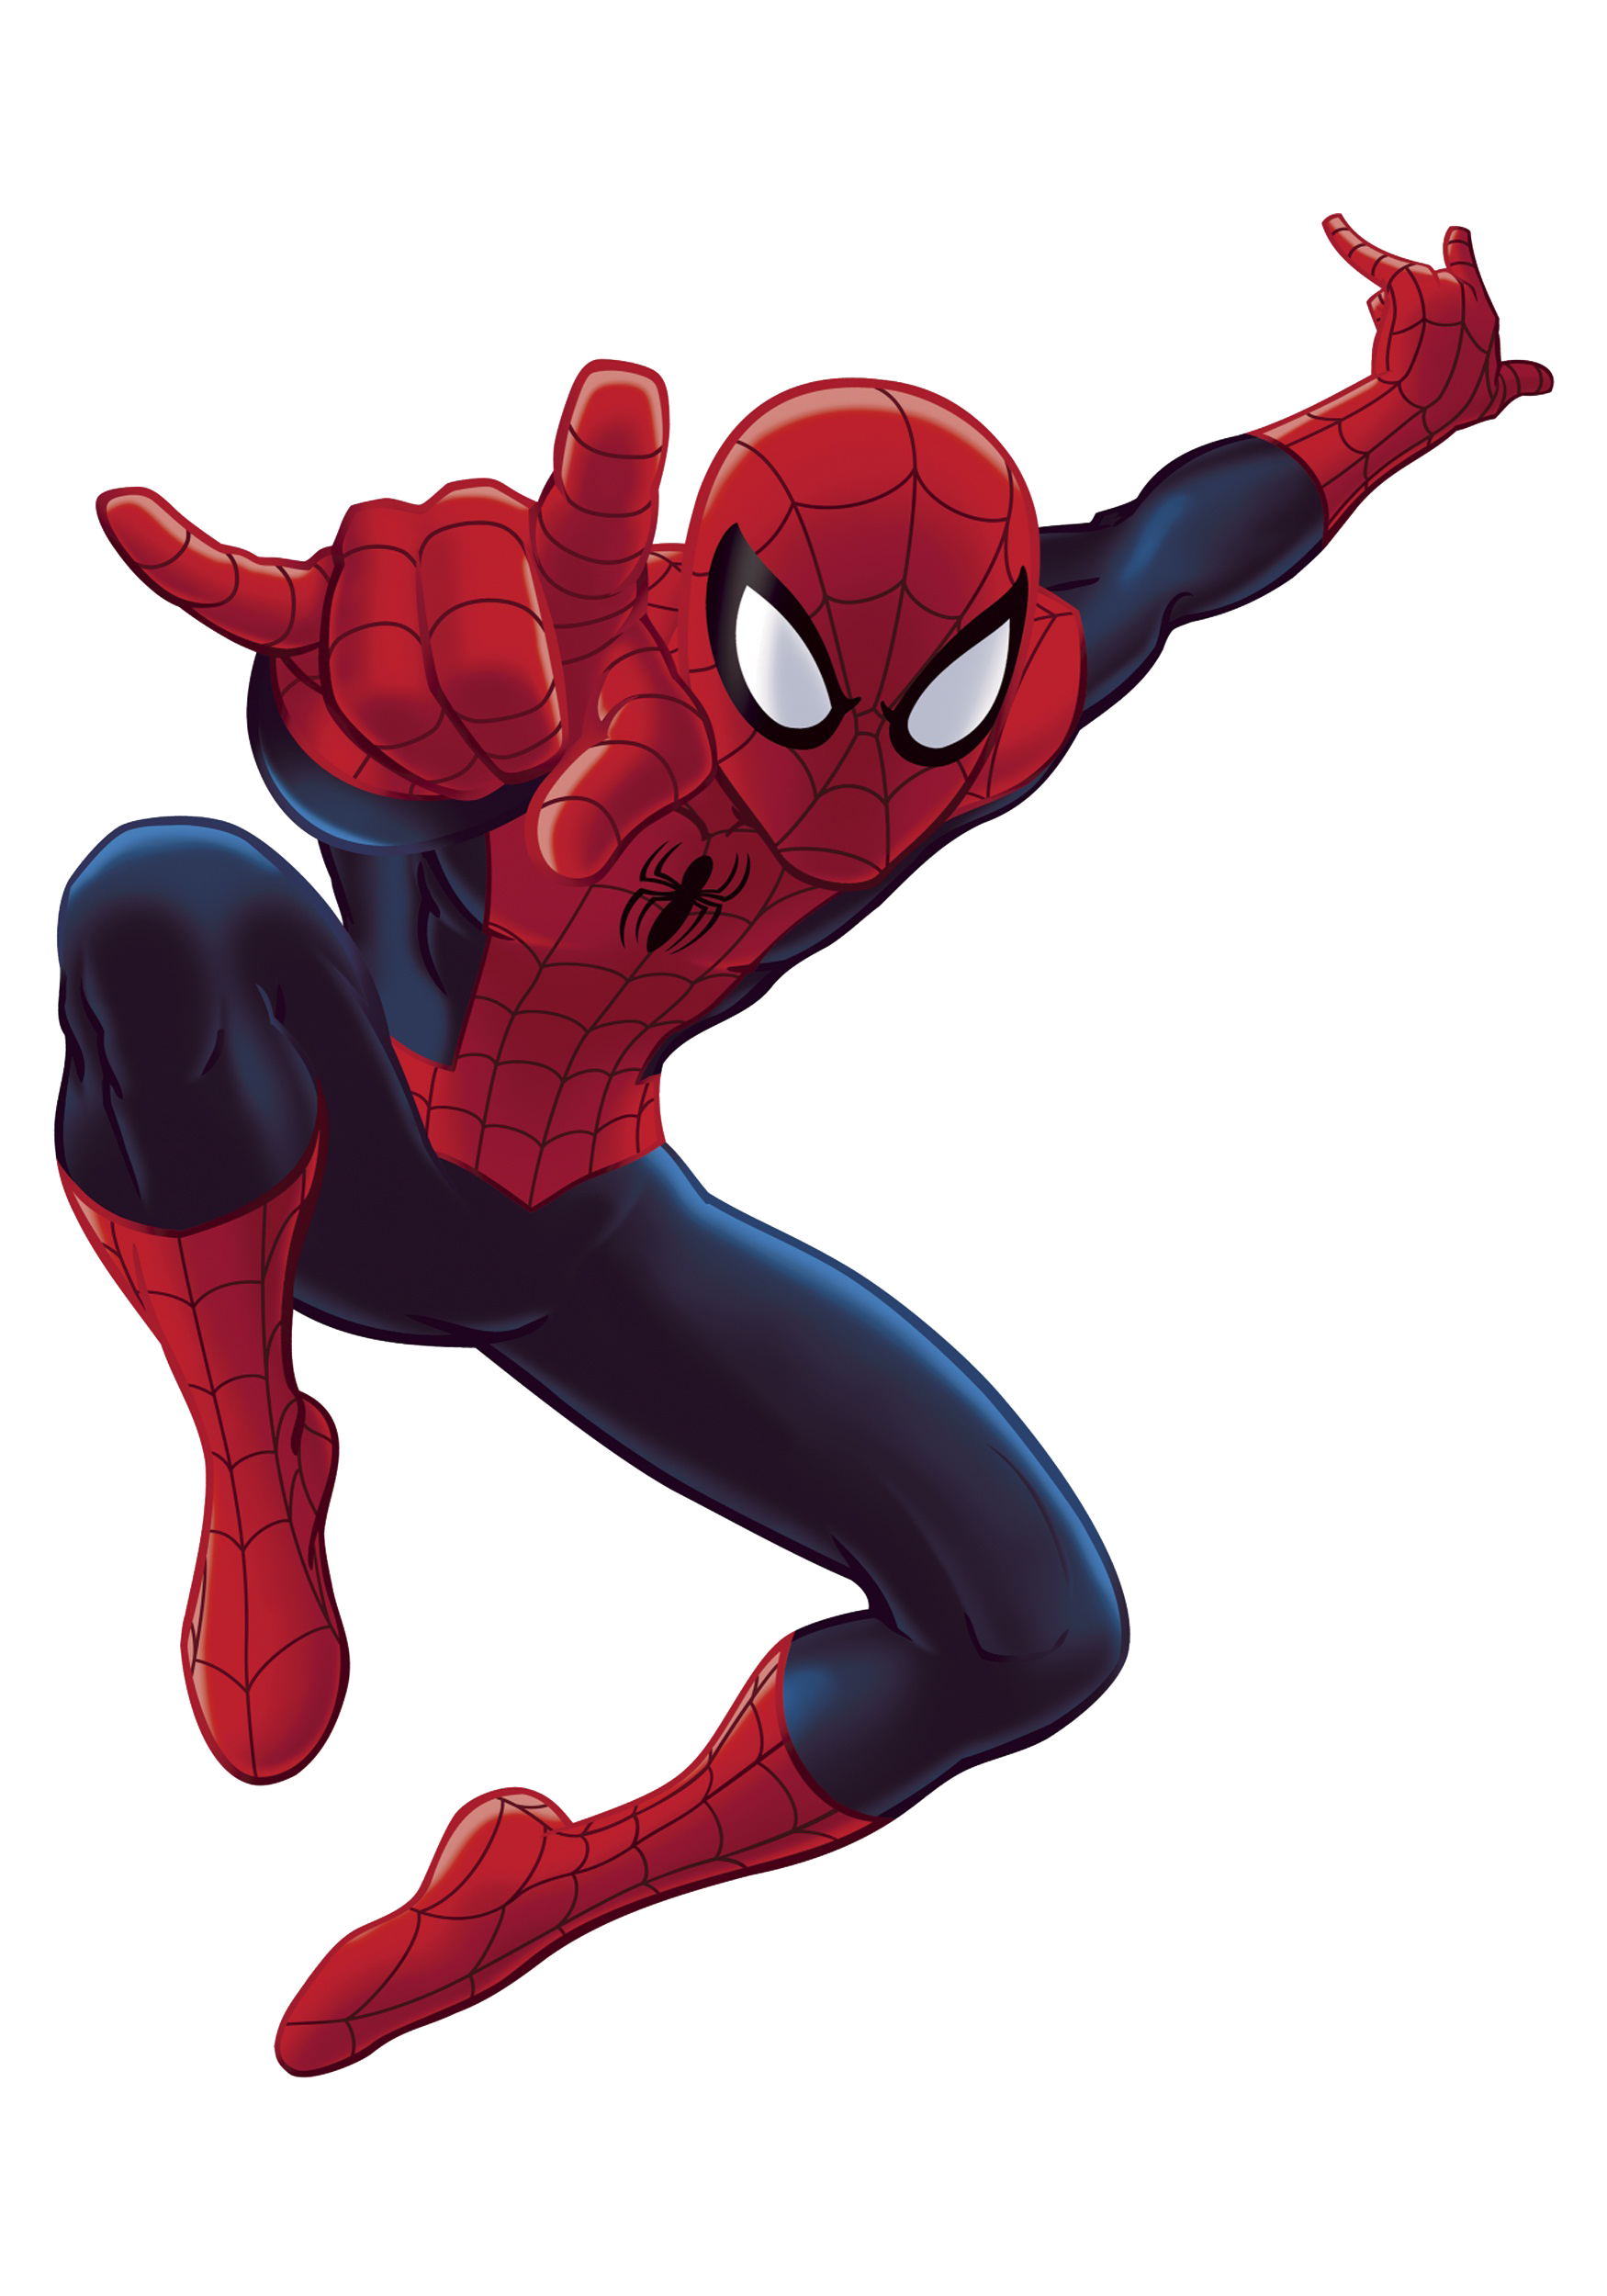 Spiderman PNG-PlusPNG.com-1750 - Spiderman PNG